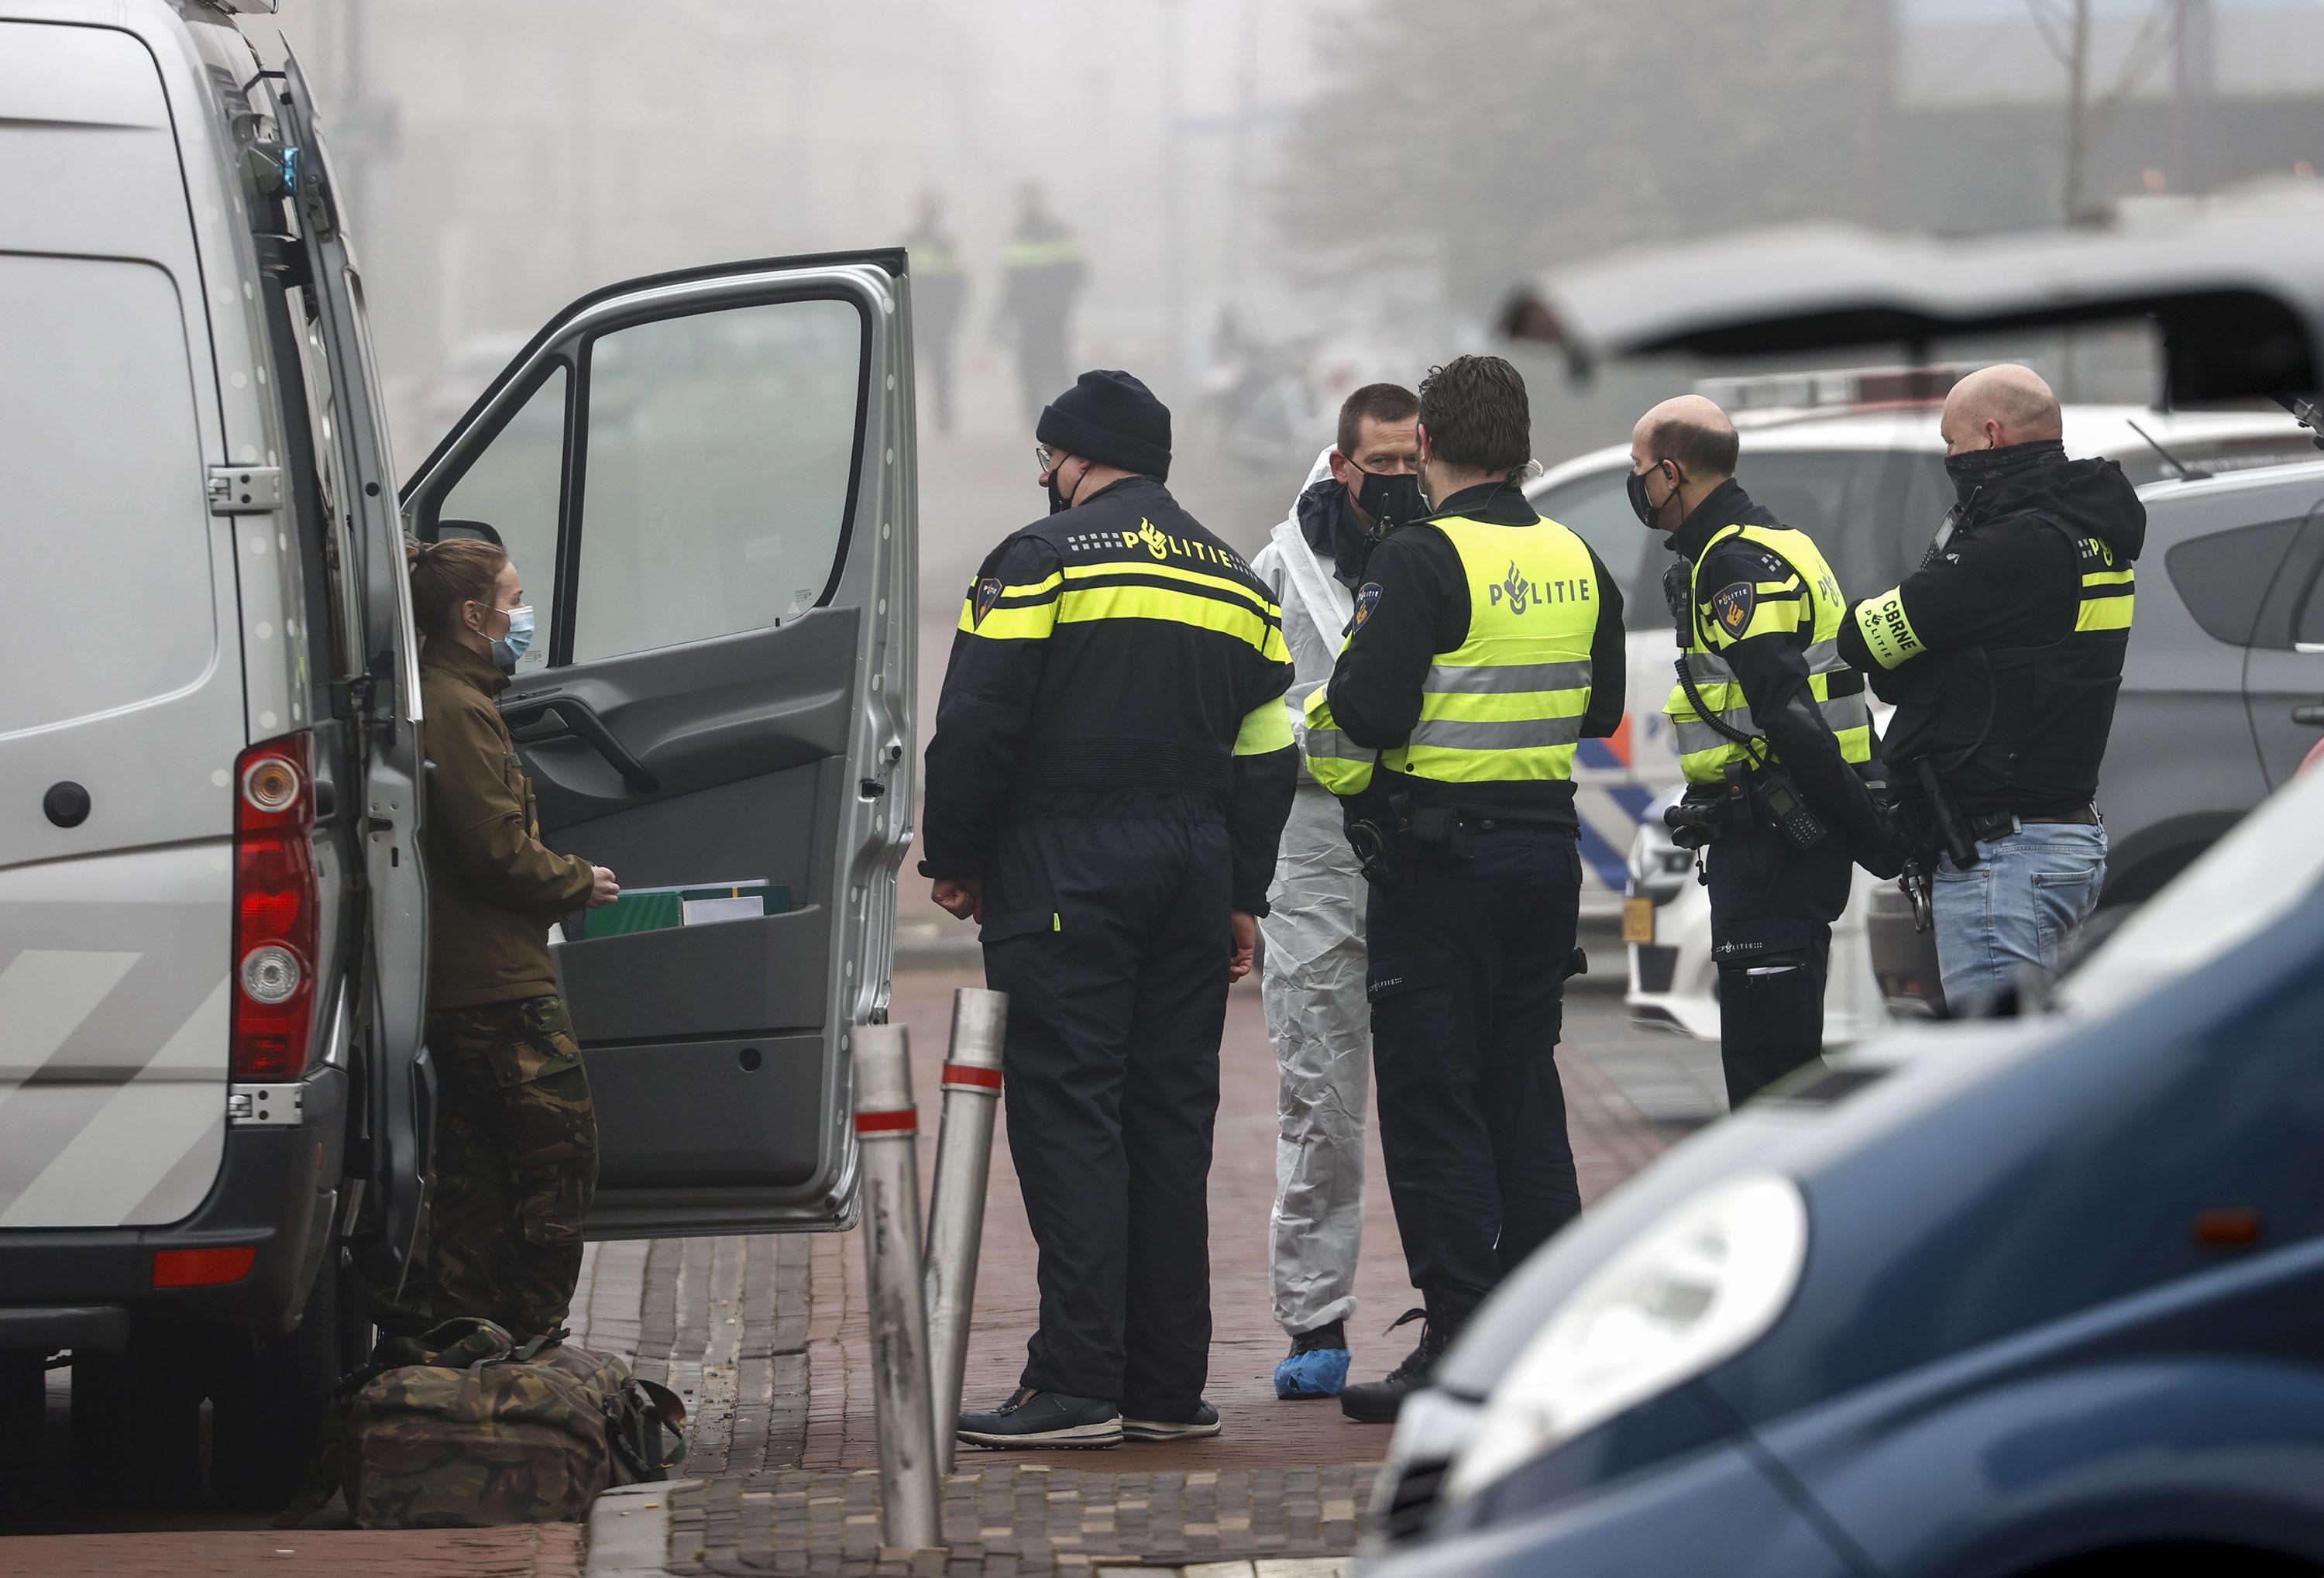 Police officers stand in a street after an explosion occurred near a Covid-19 test center in Bovenkarspel, the Netherlands, on March 3.